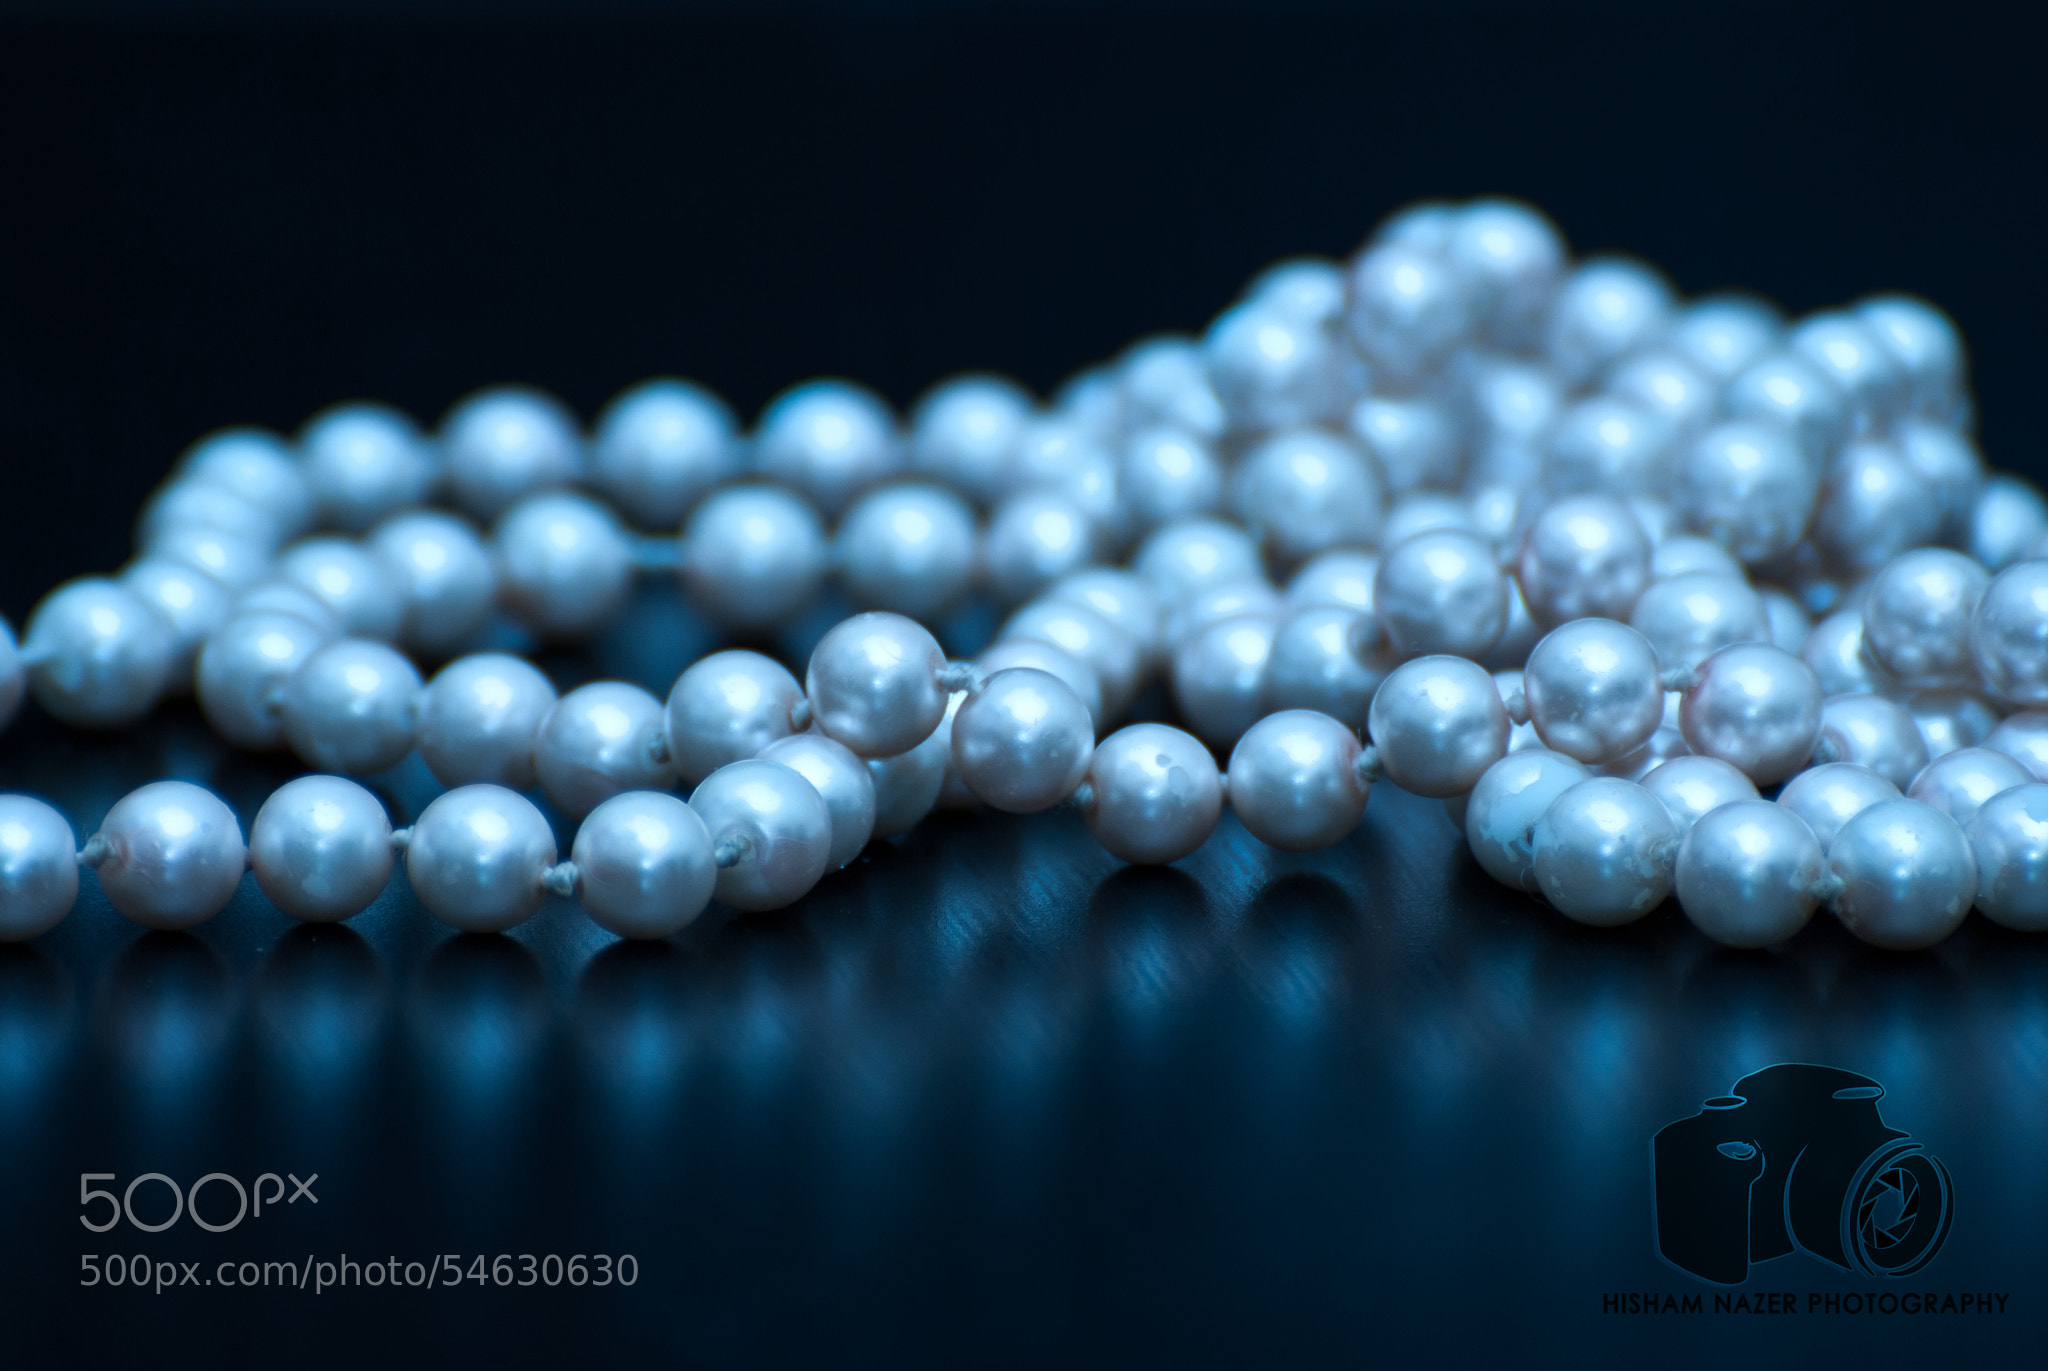 Photograph Pearls.. by Hisham Nazer on 500px